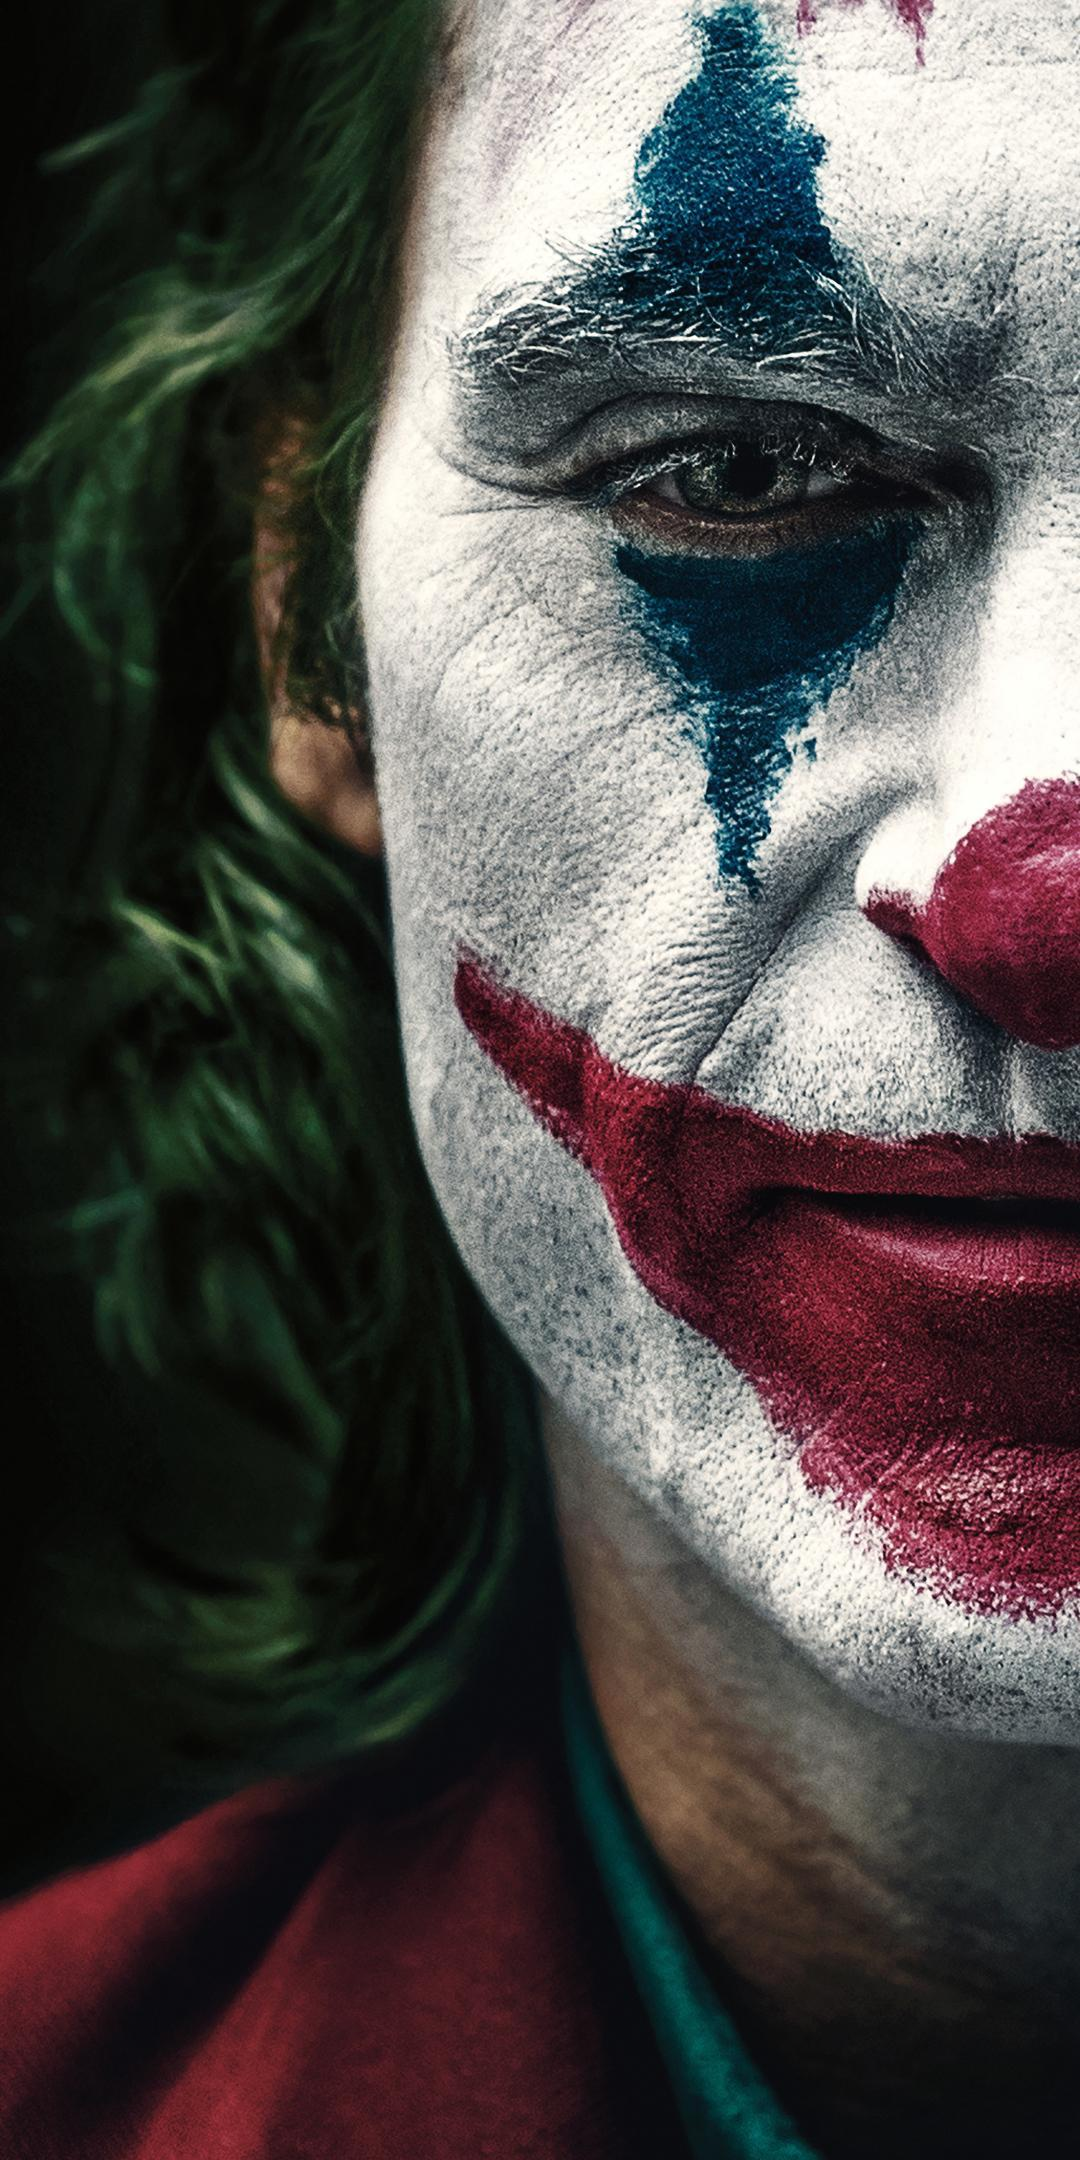 Joker Wallpapers 4k Hd For Android Apk Download